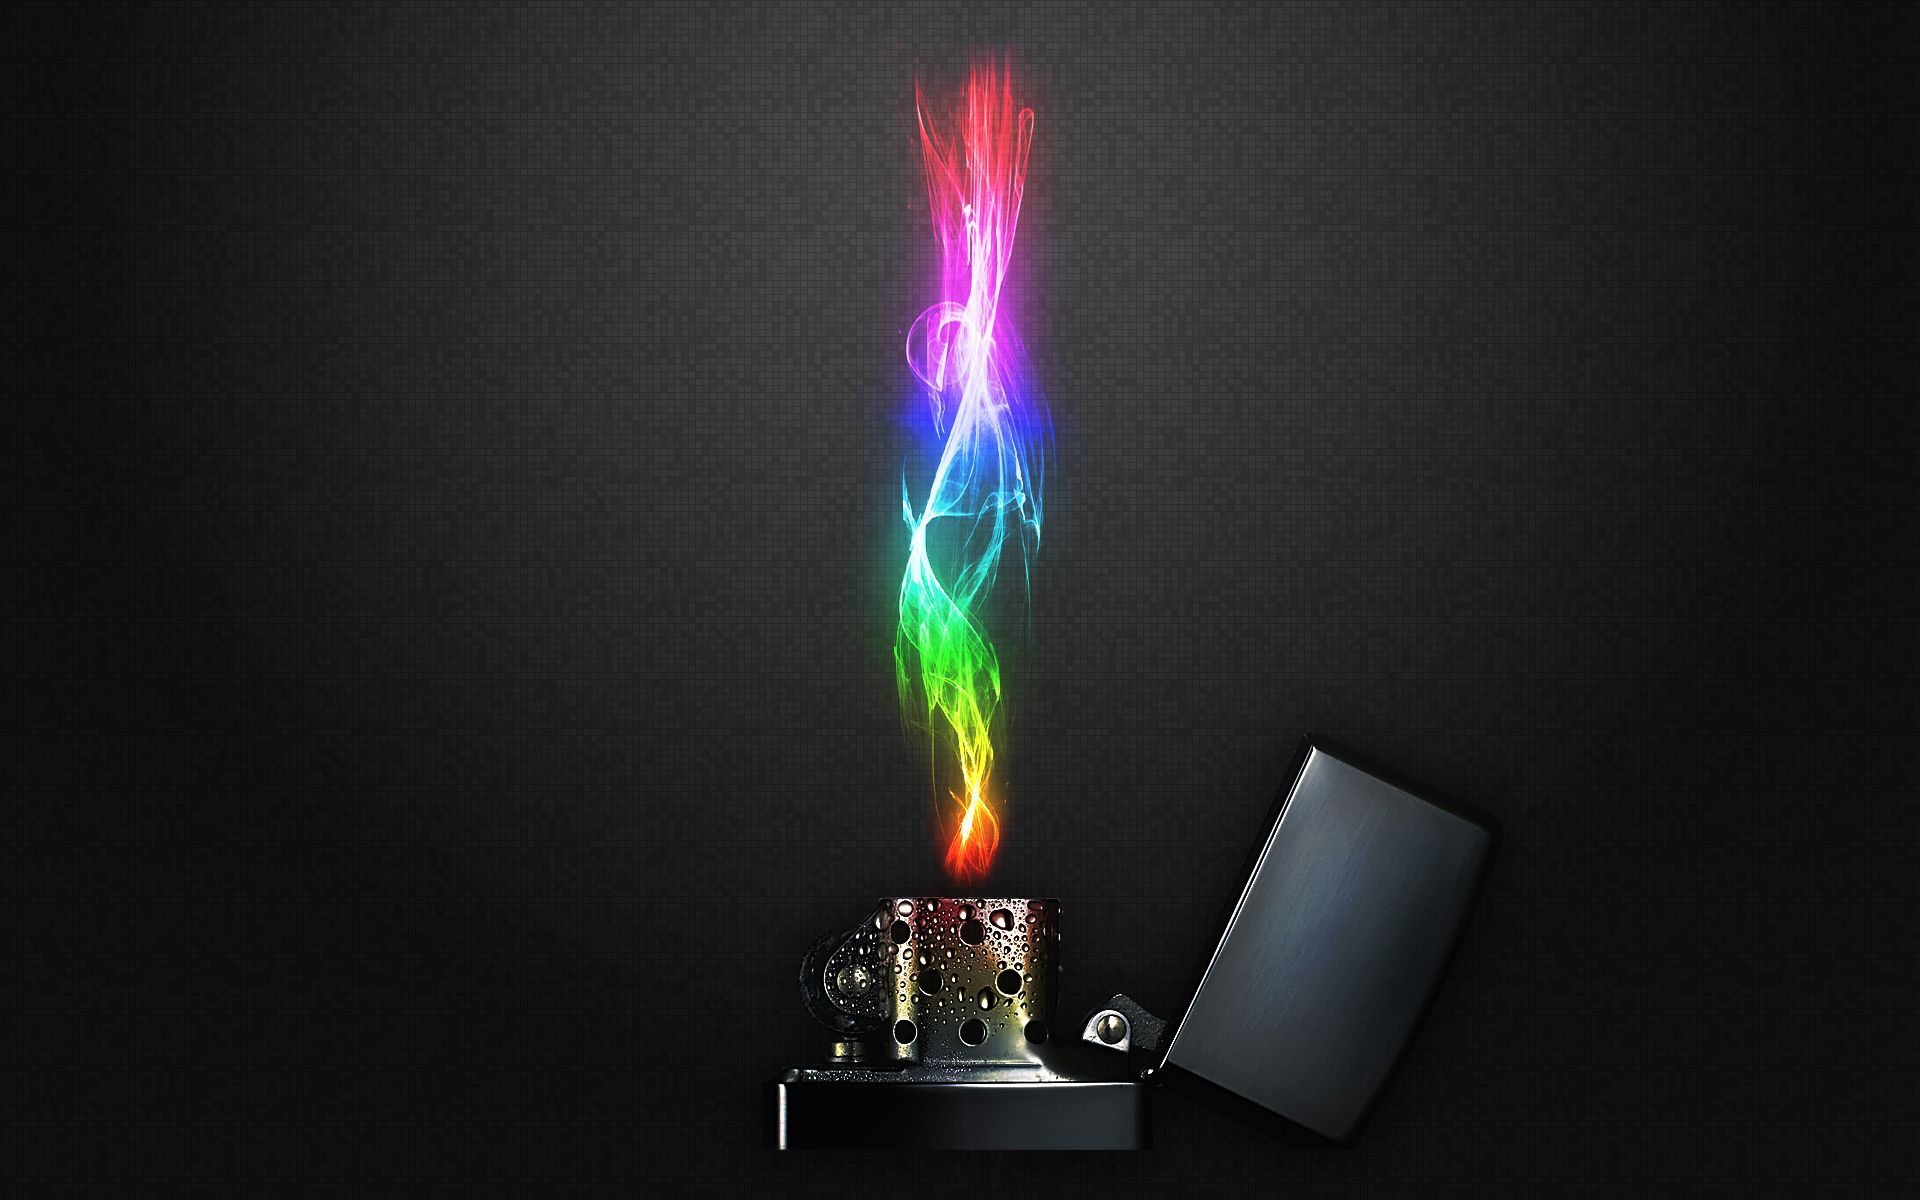 Lighter Wallpaper HD